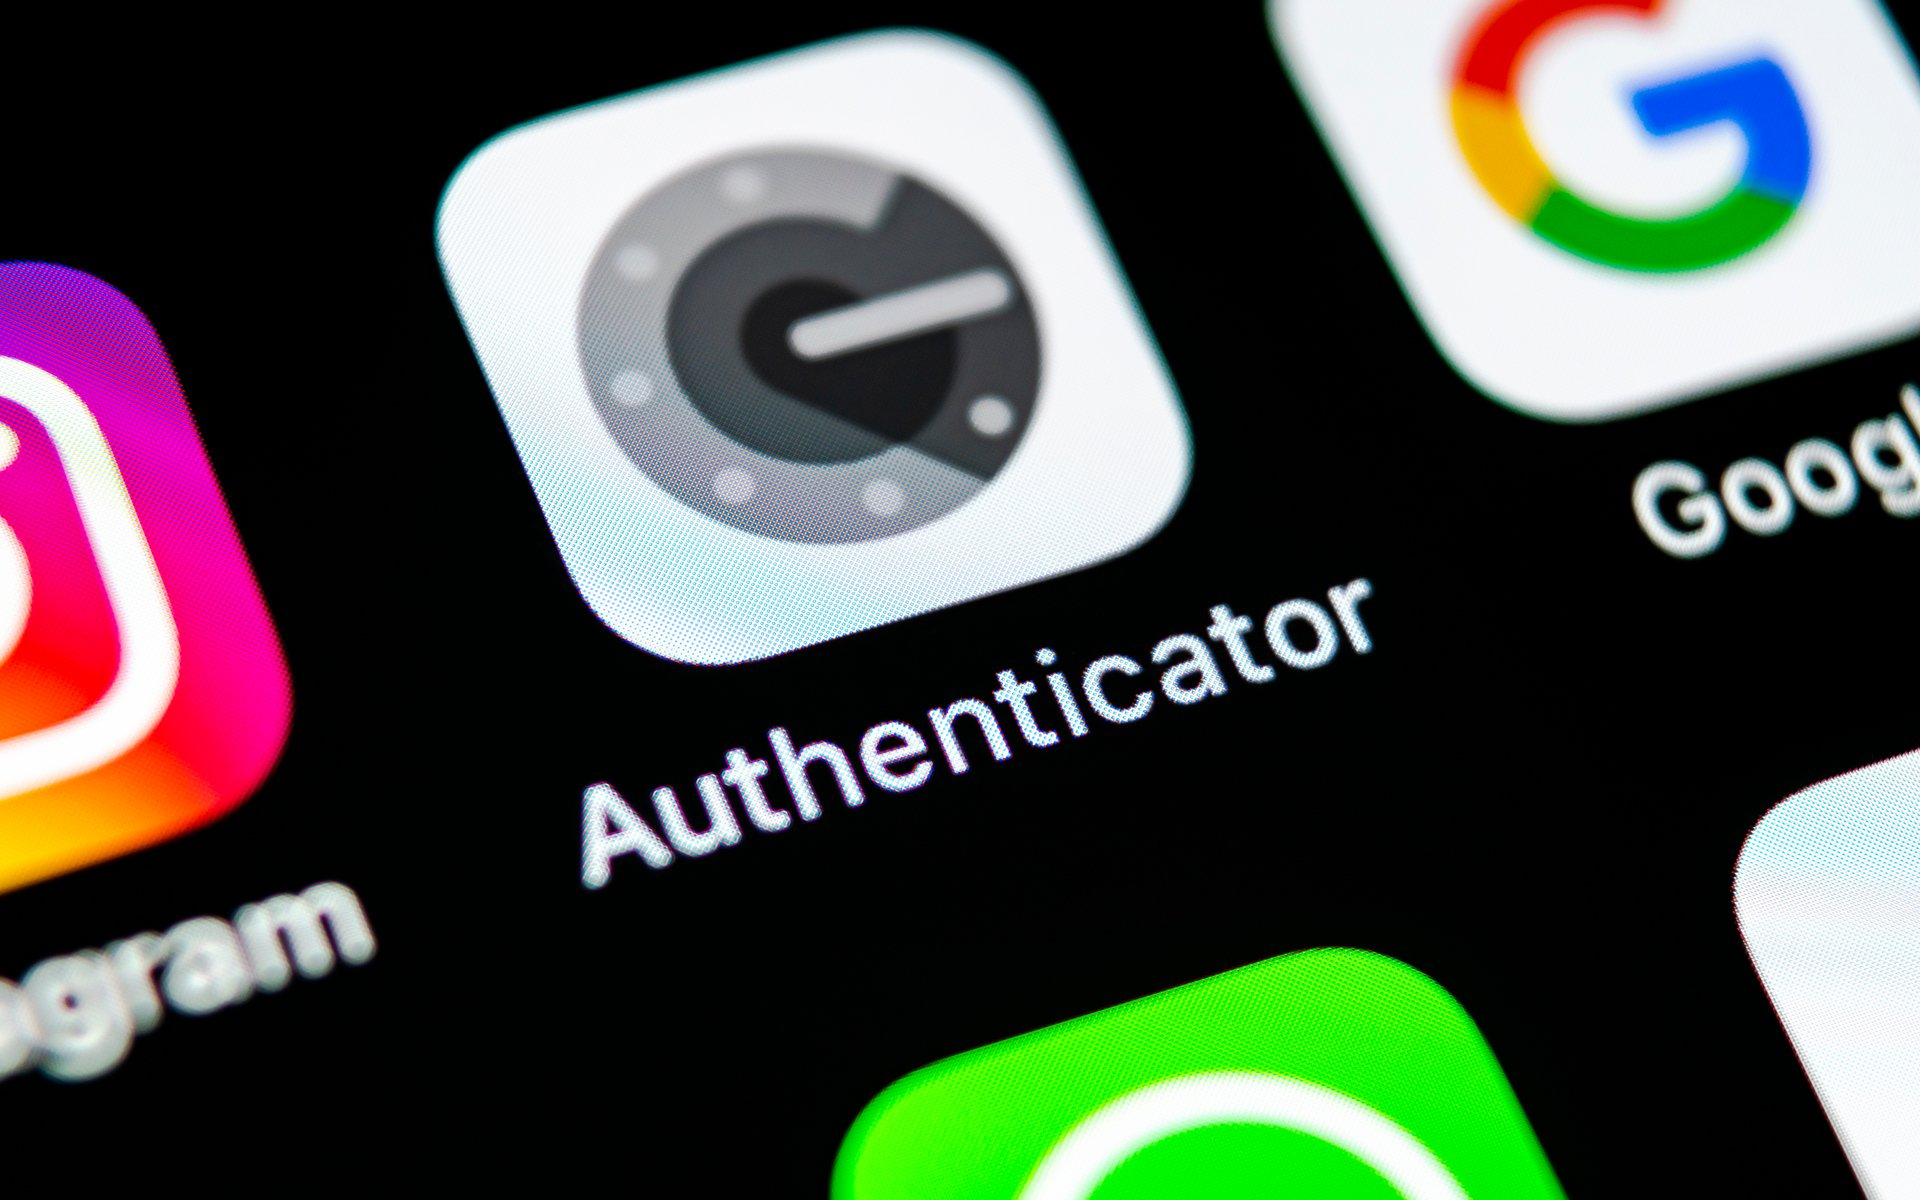 Top Crypto Exchanges Still Using Authenticator 2FA Despite Google